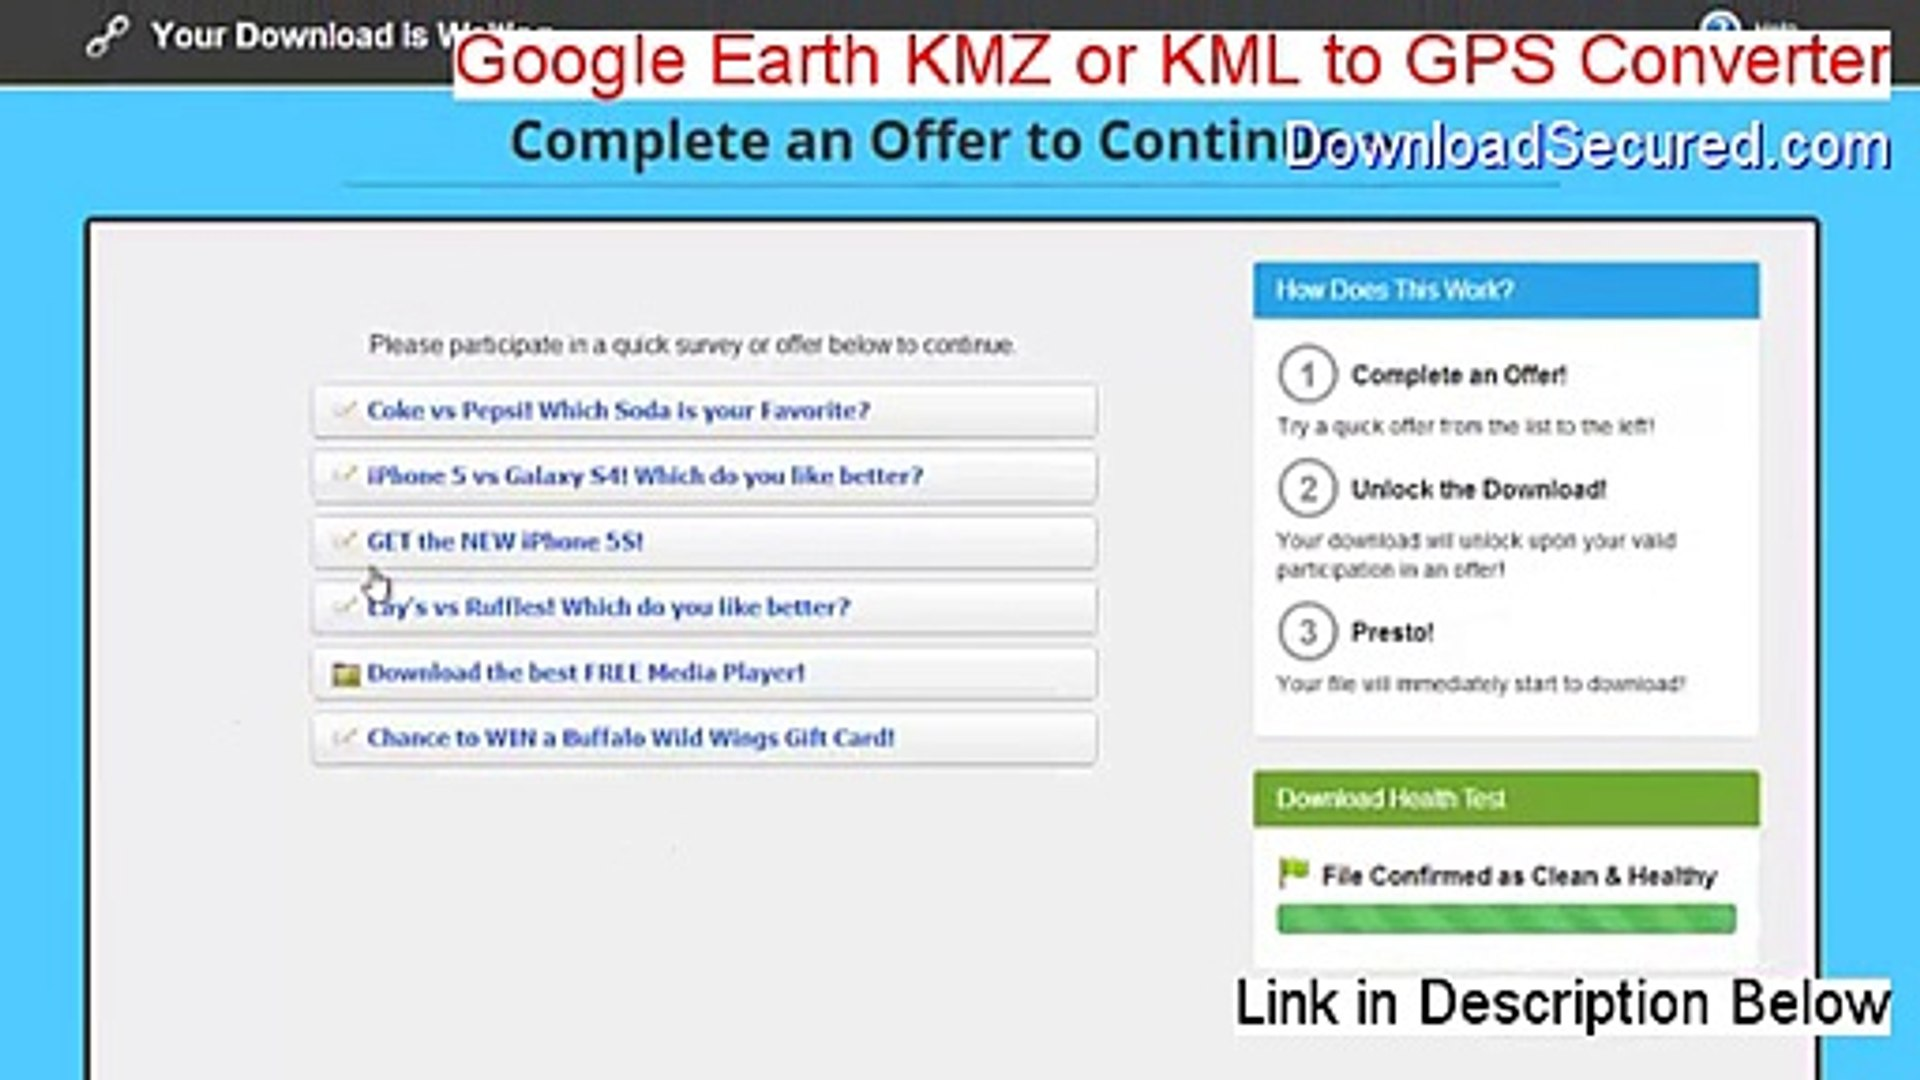 Google Earth KMZ or KML to GPS Converter Cracked - Instant Download